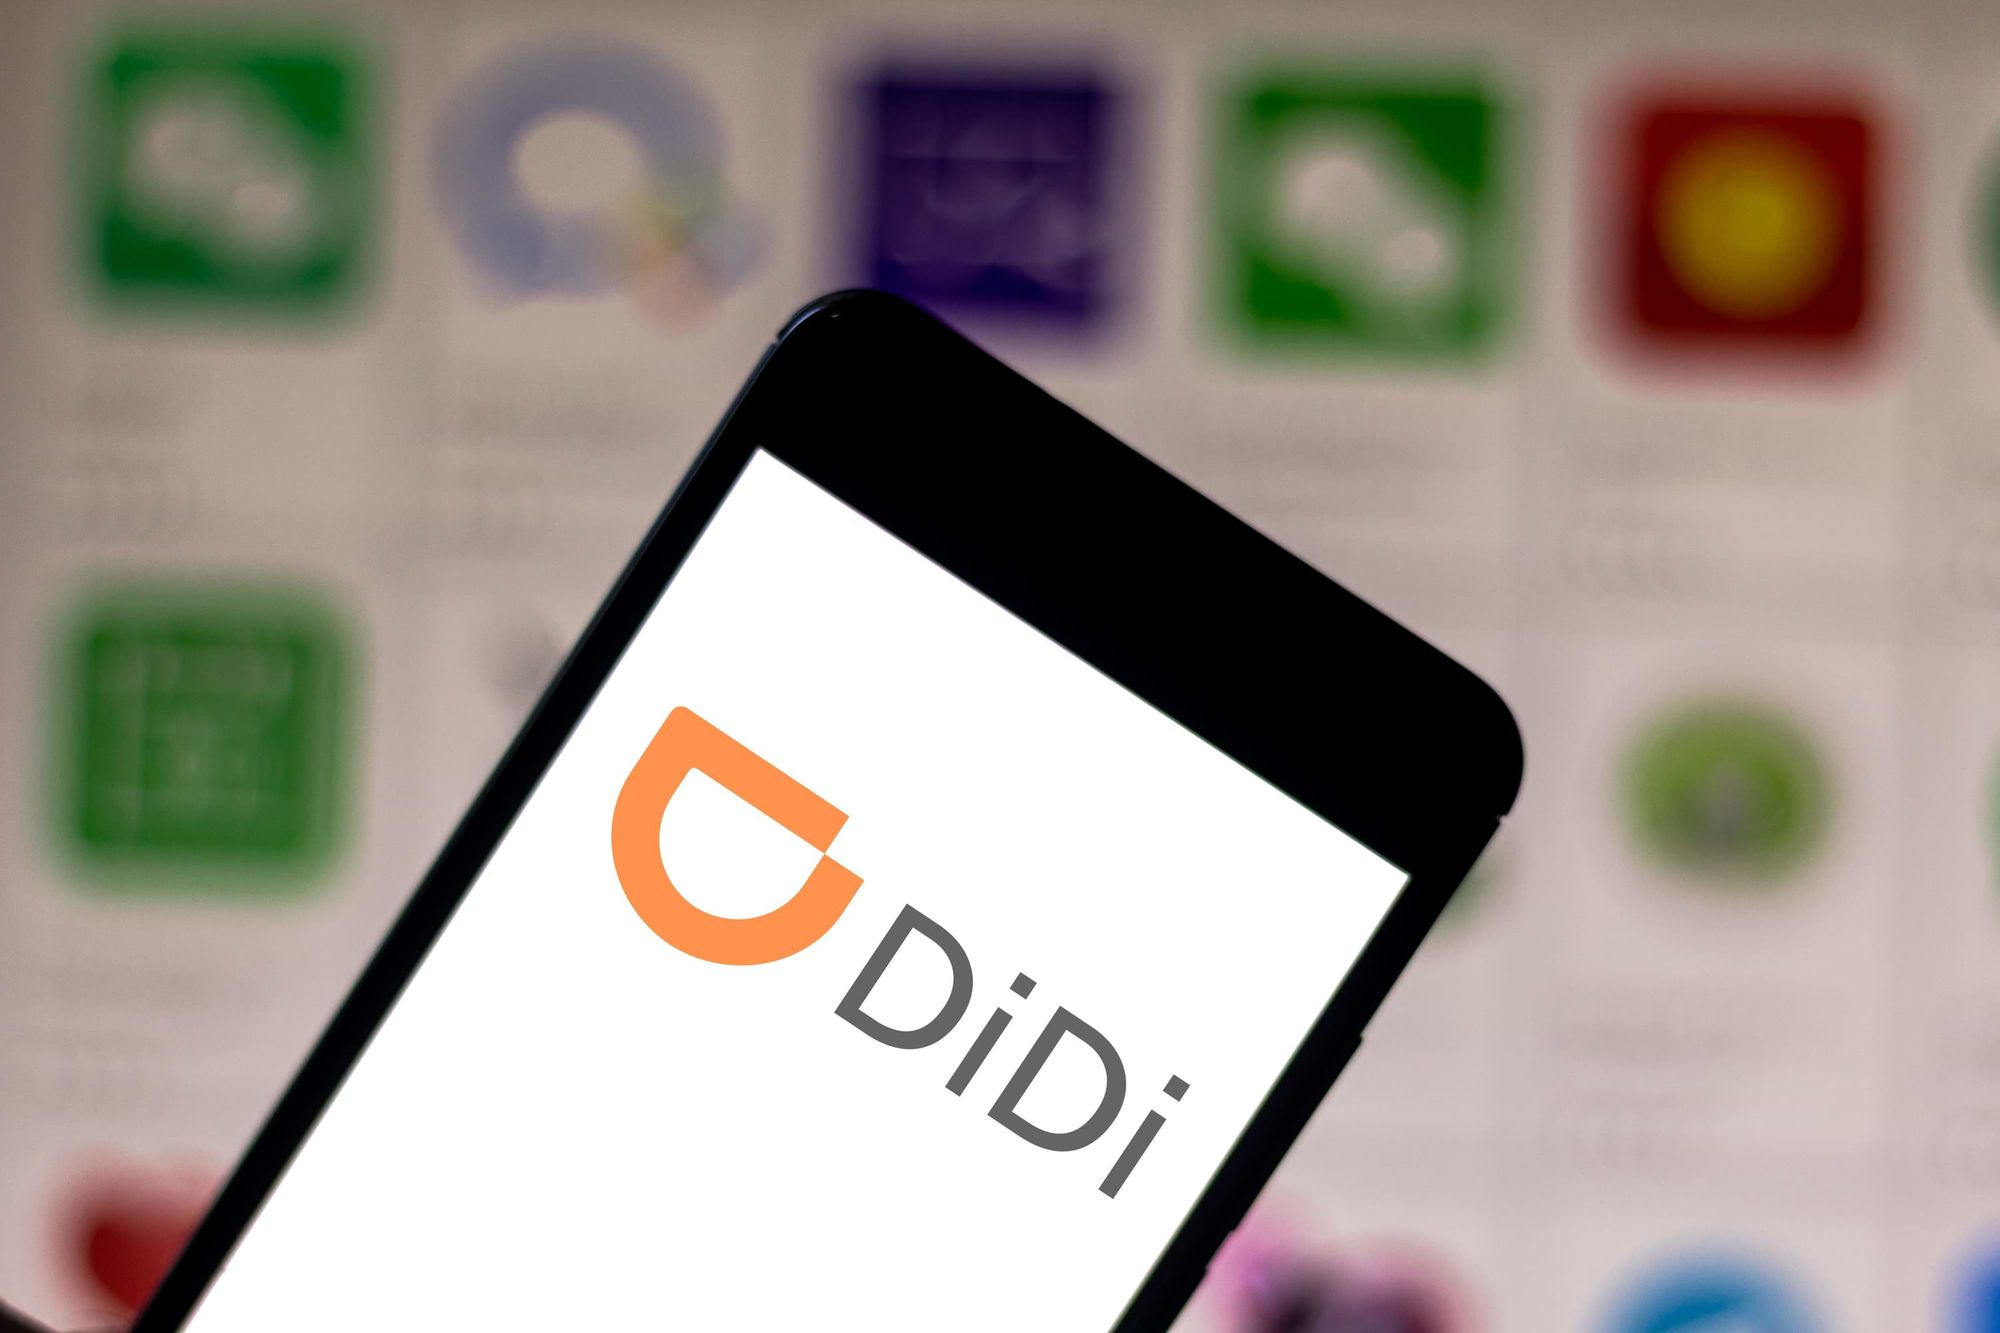 Características y requisitos de Didi